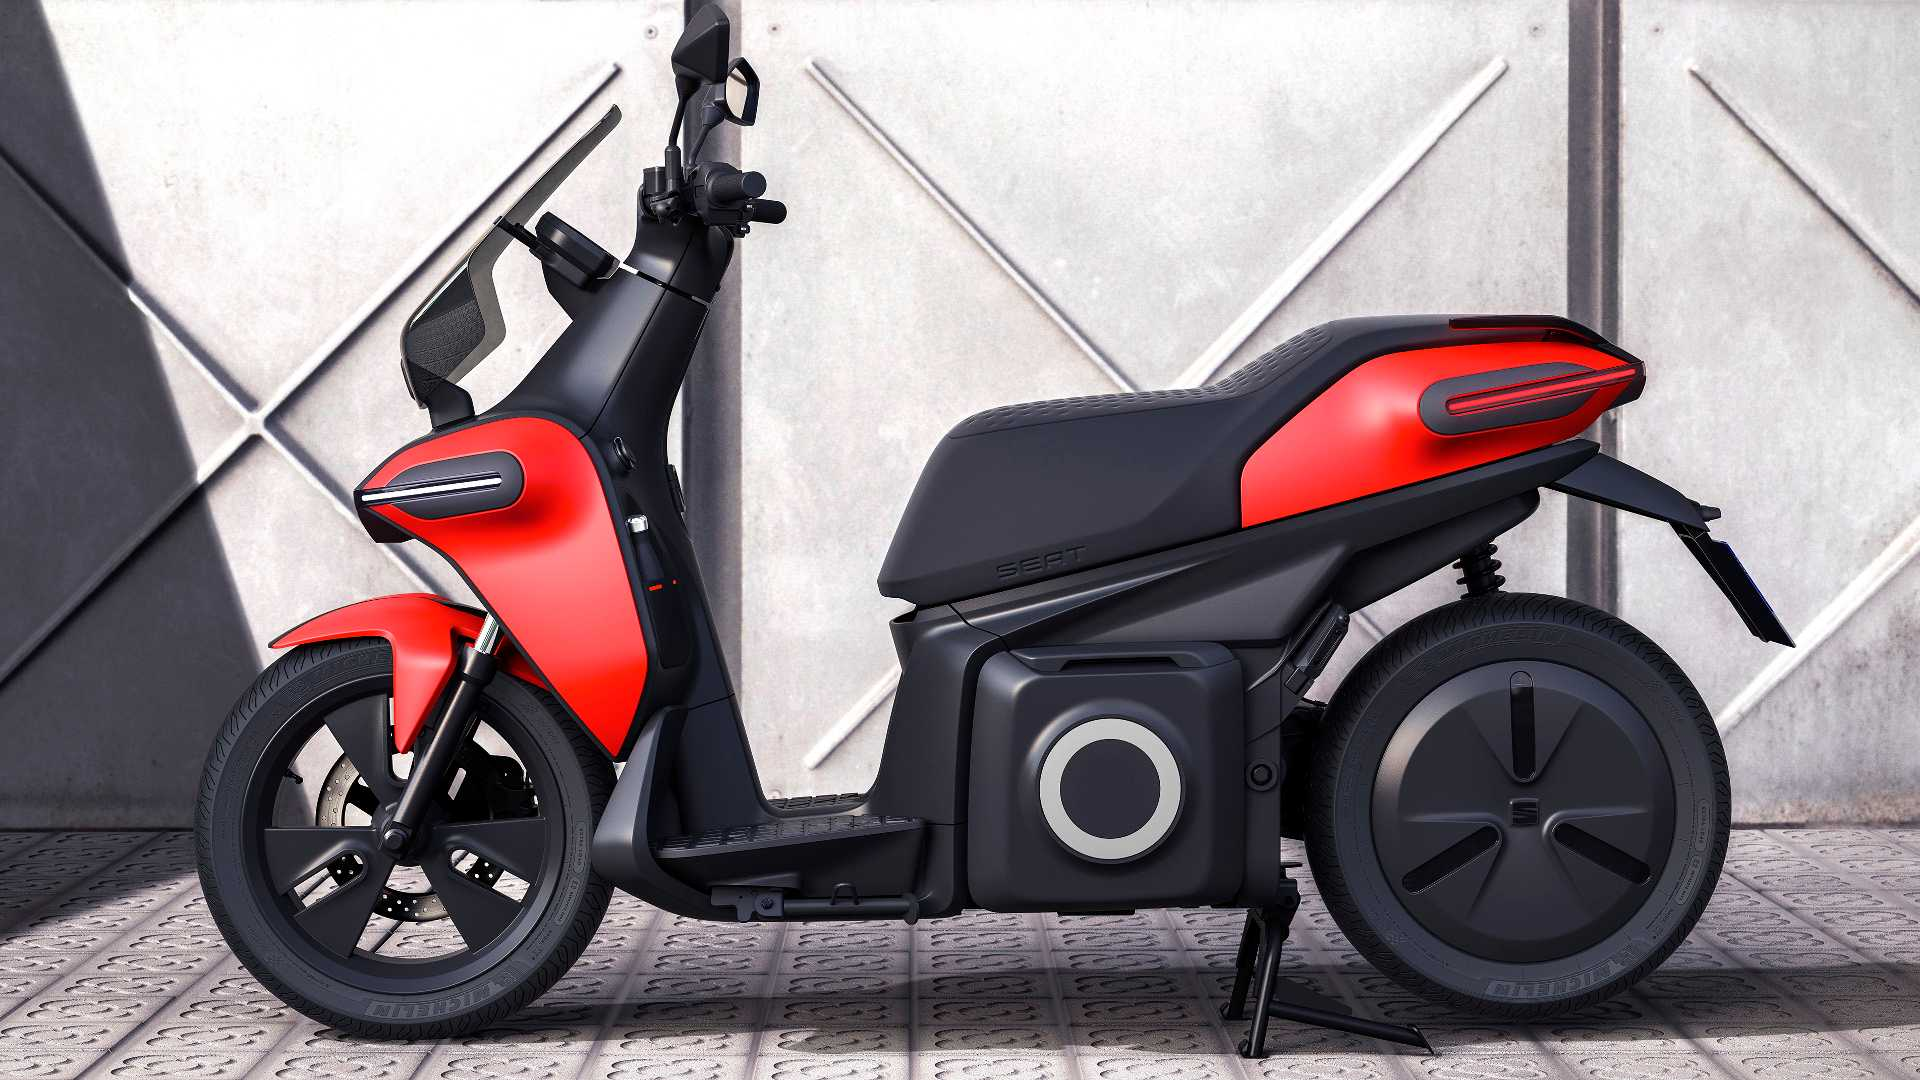 SEAT e-Scooter Concept didn't come to play games